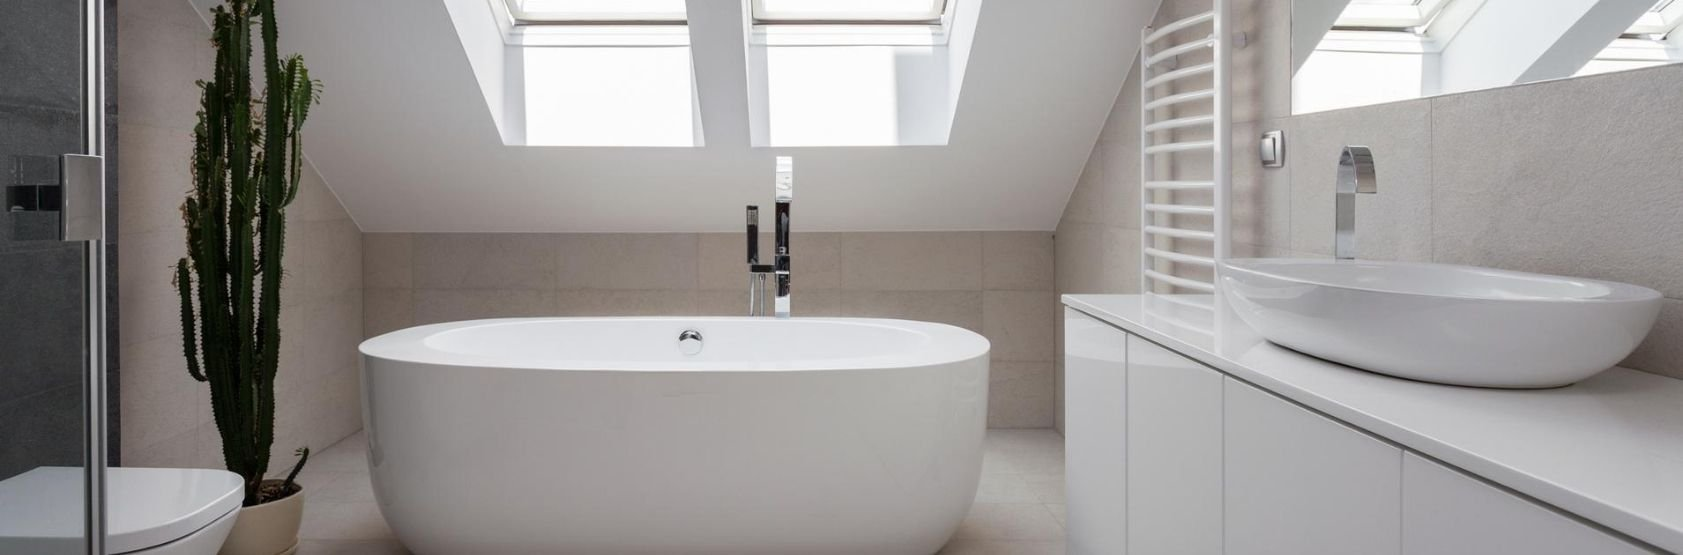 Bathroom-Fitting-Services-Poole